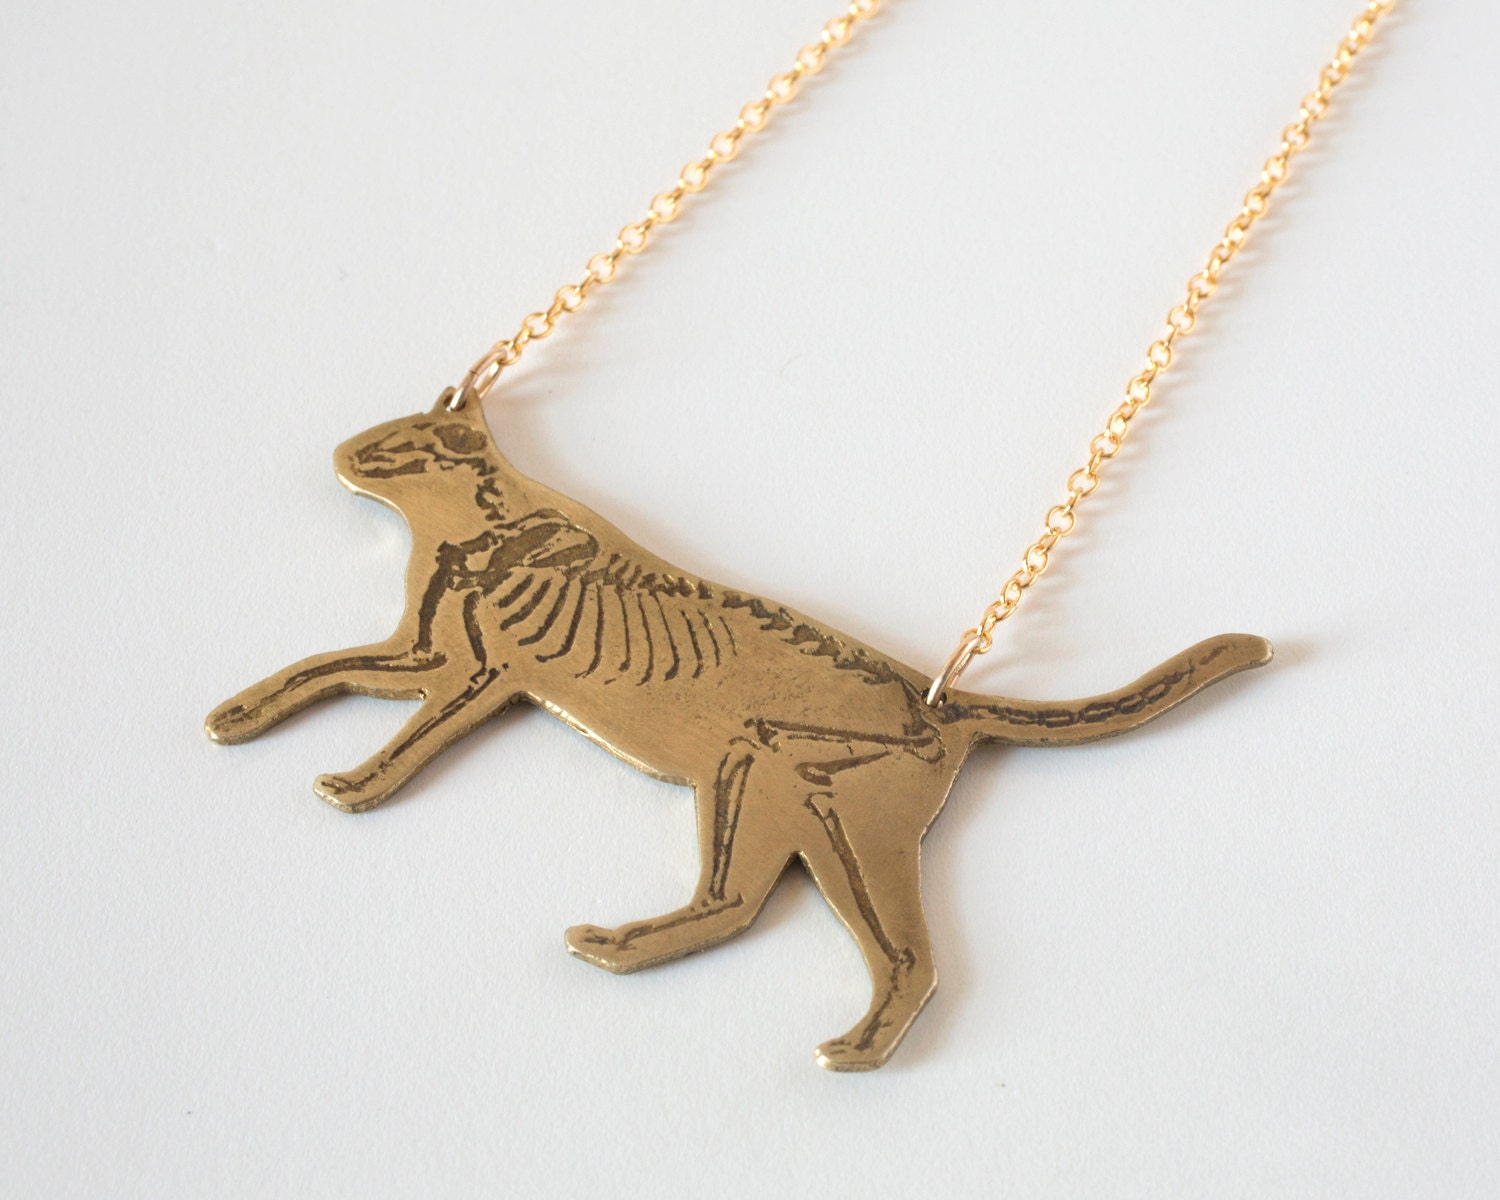 boutique justin st bo s little necklace cat sleeping pendant